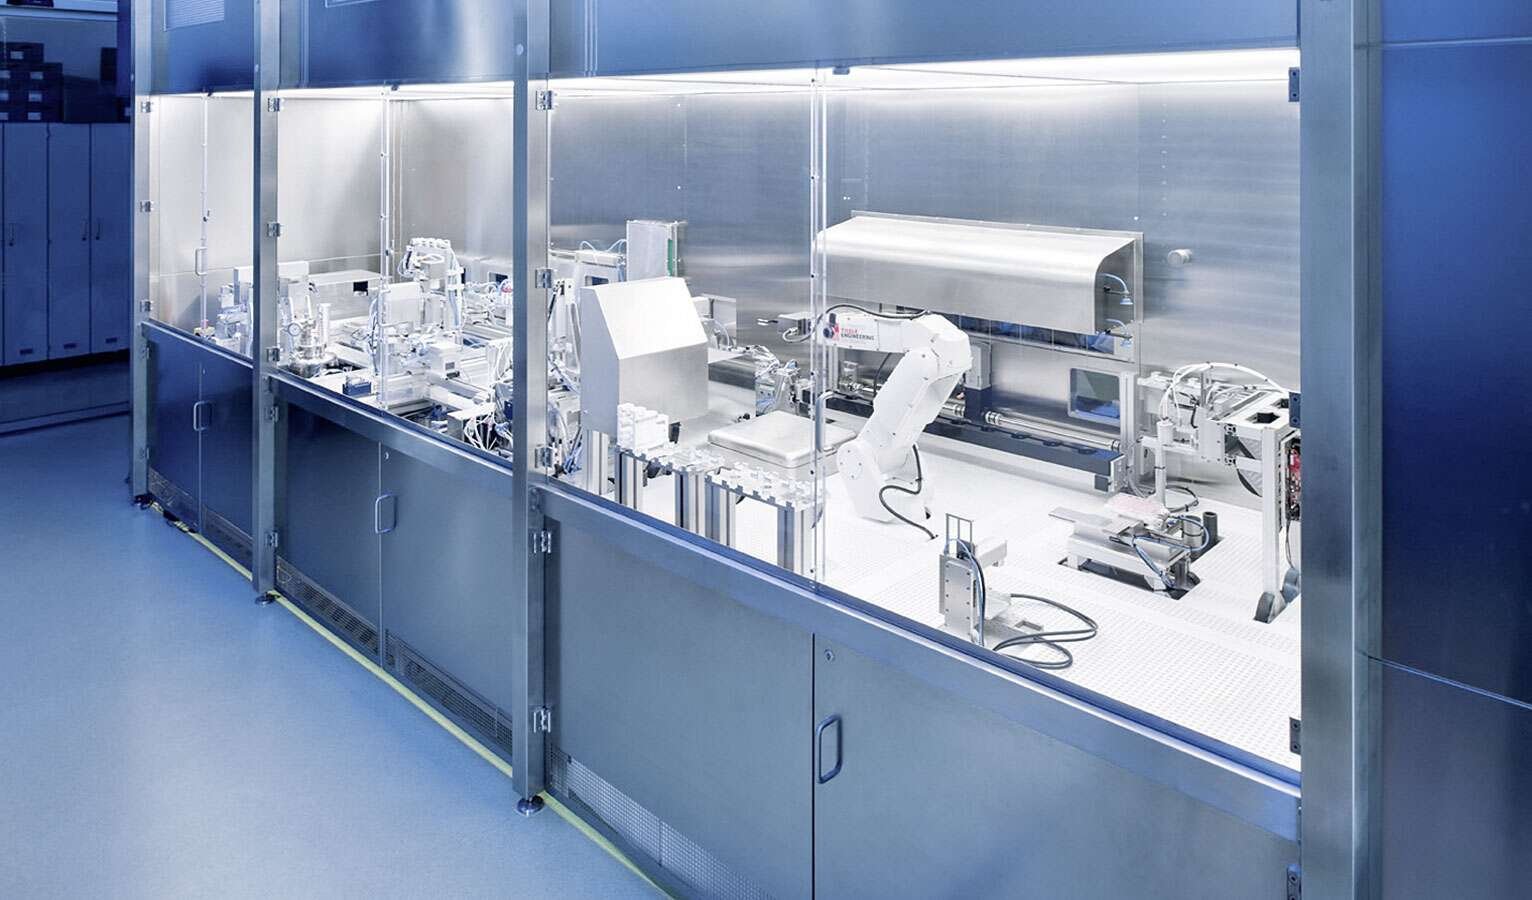 The facility for the production of artificial skin